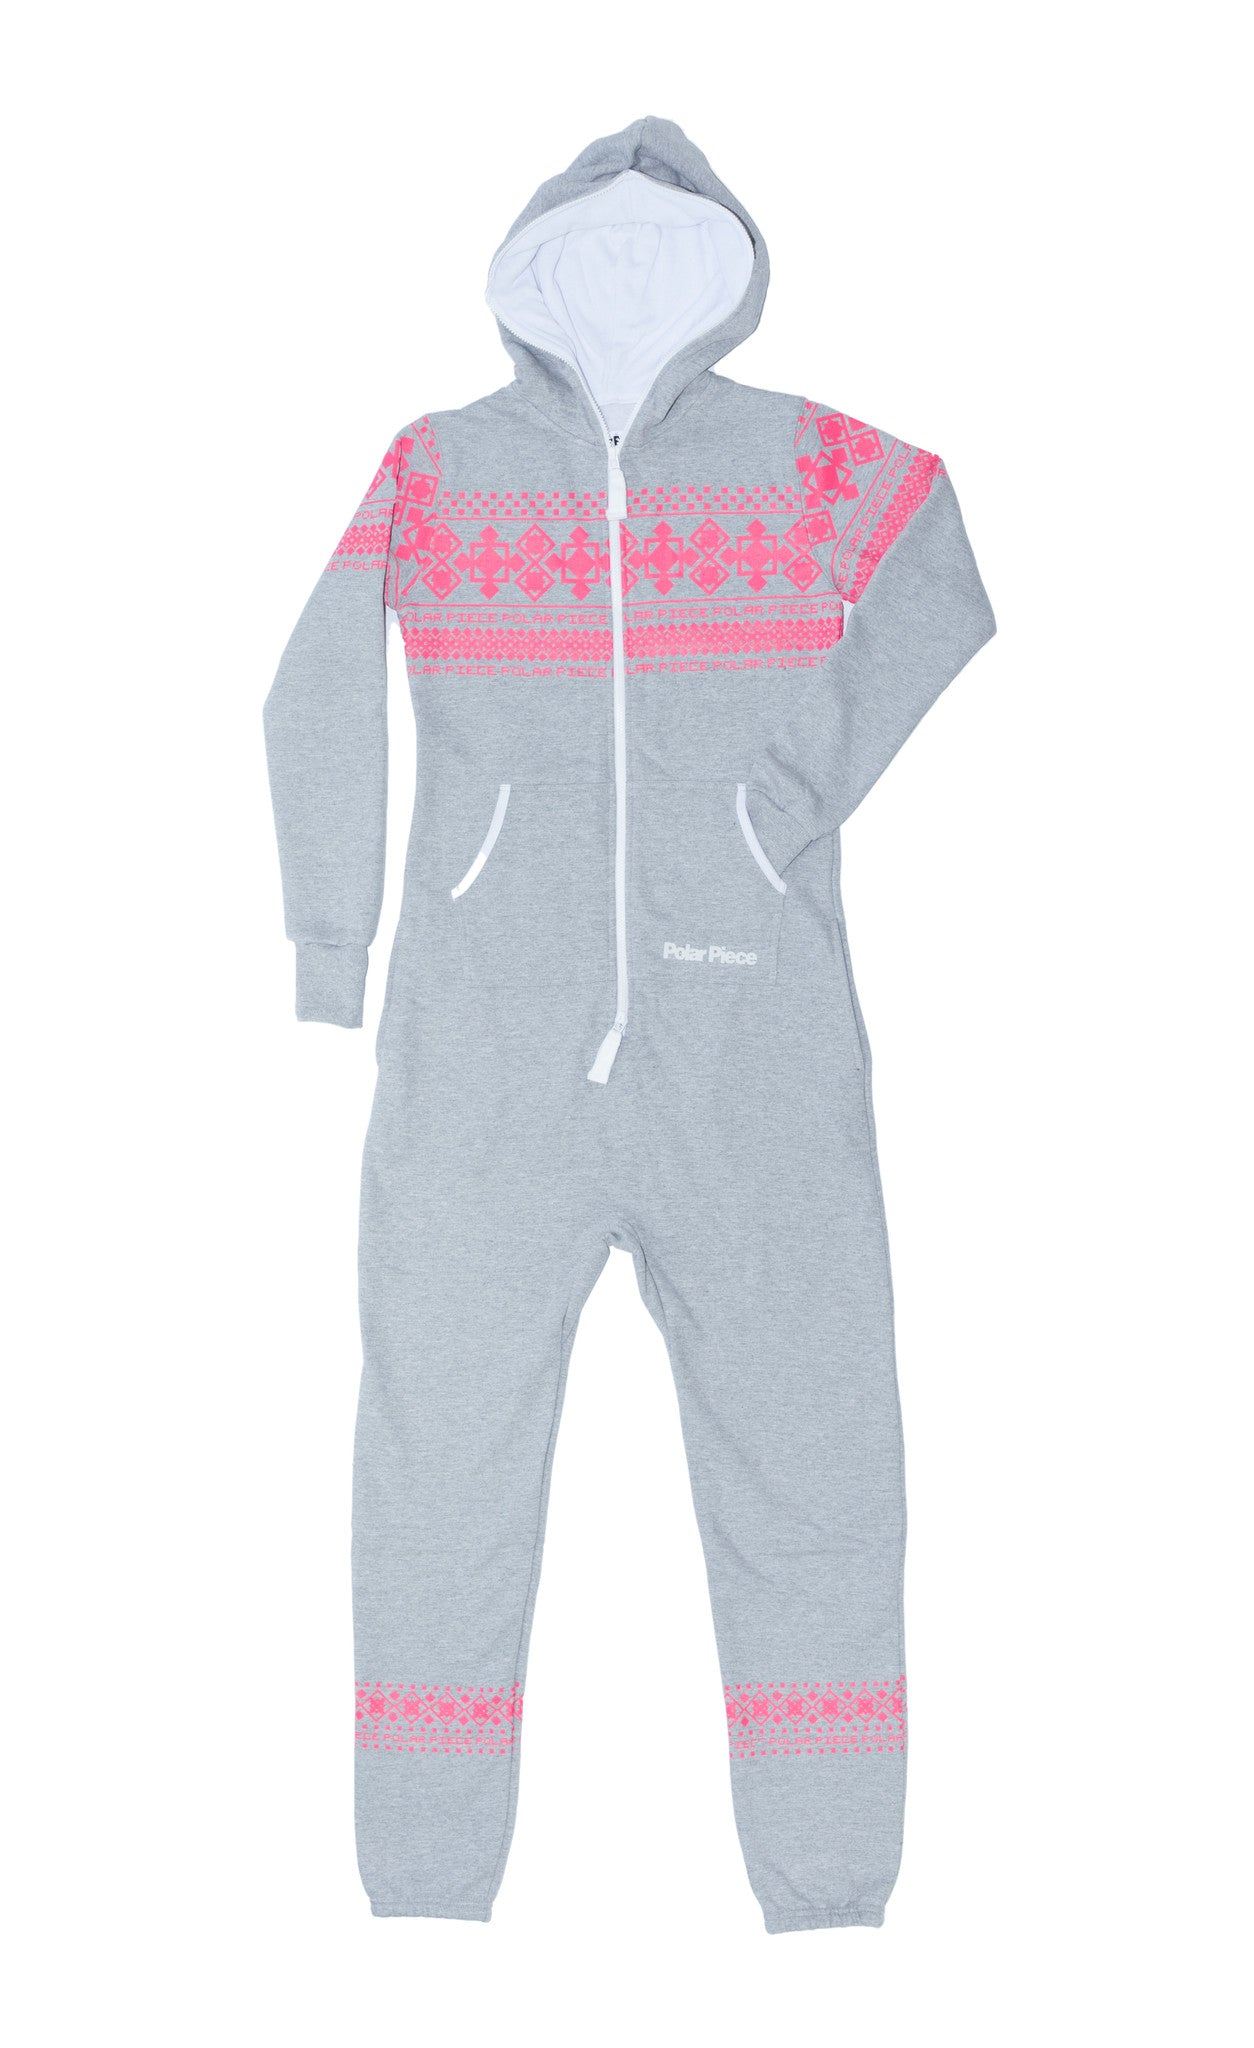 Light Grey PolarPiece with Pink Arctic Print - PolarPiece | Simply Canadian